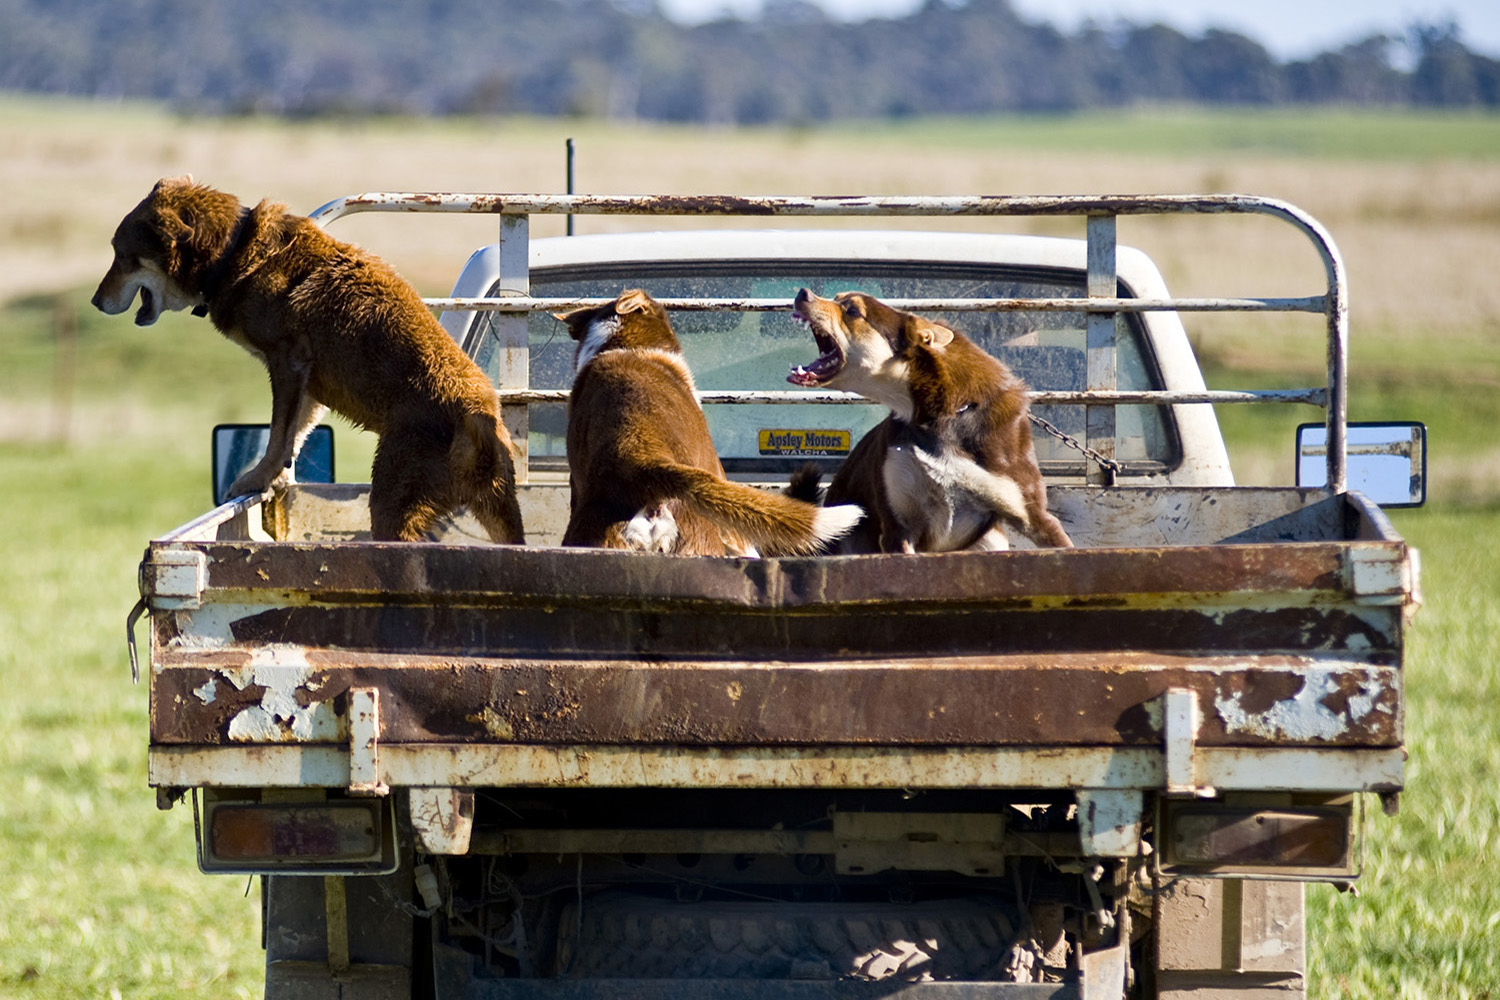 image of AARONTAIT COPYRIGHTED 2014 387 RURAL PHOTOGRAPHER FARM LIFE AGRICULTURE WOOL BEEF STOCKMAN MUSTER CATTLE FARM AUSTRALIAN CATTLE DOG CRANKY